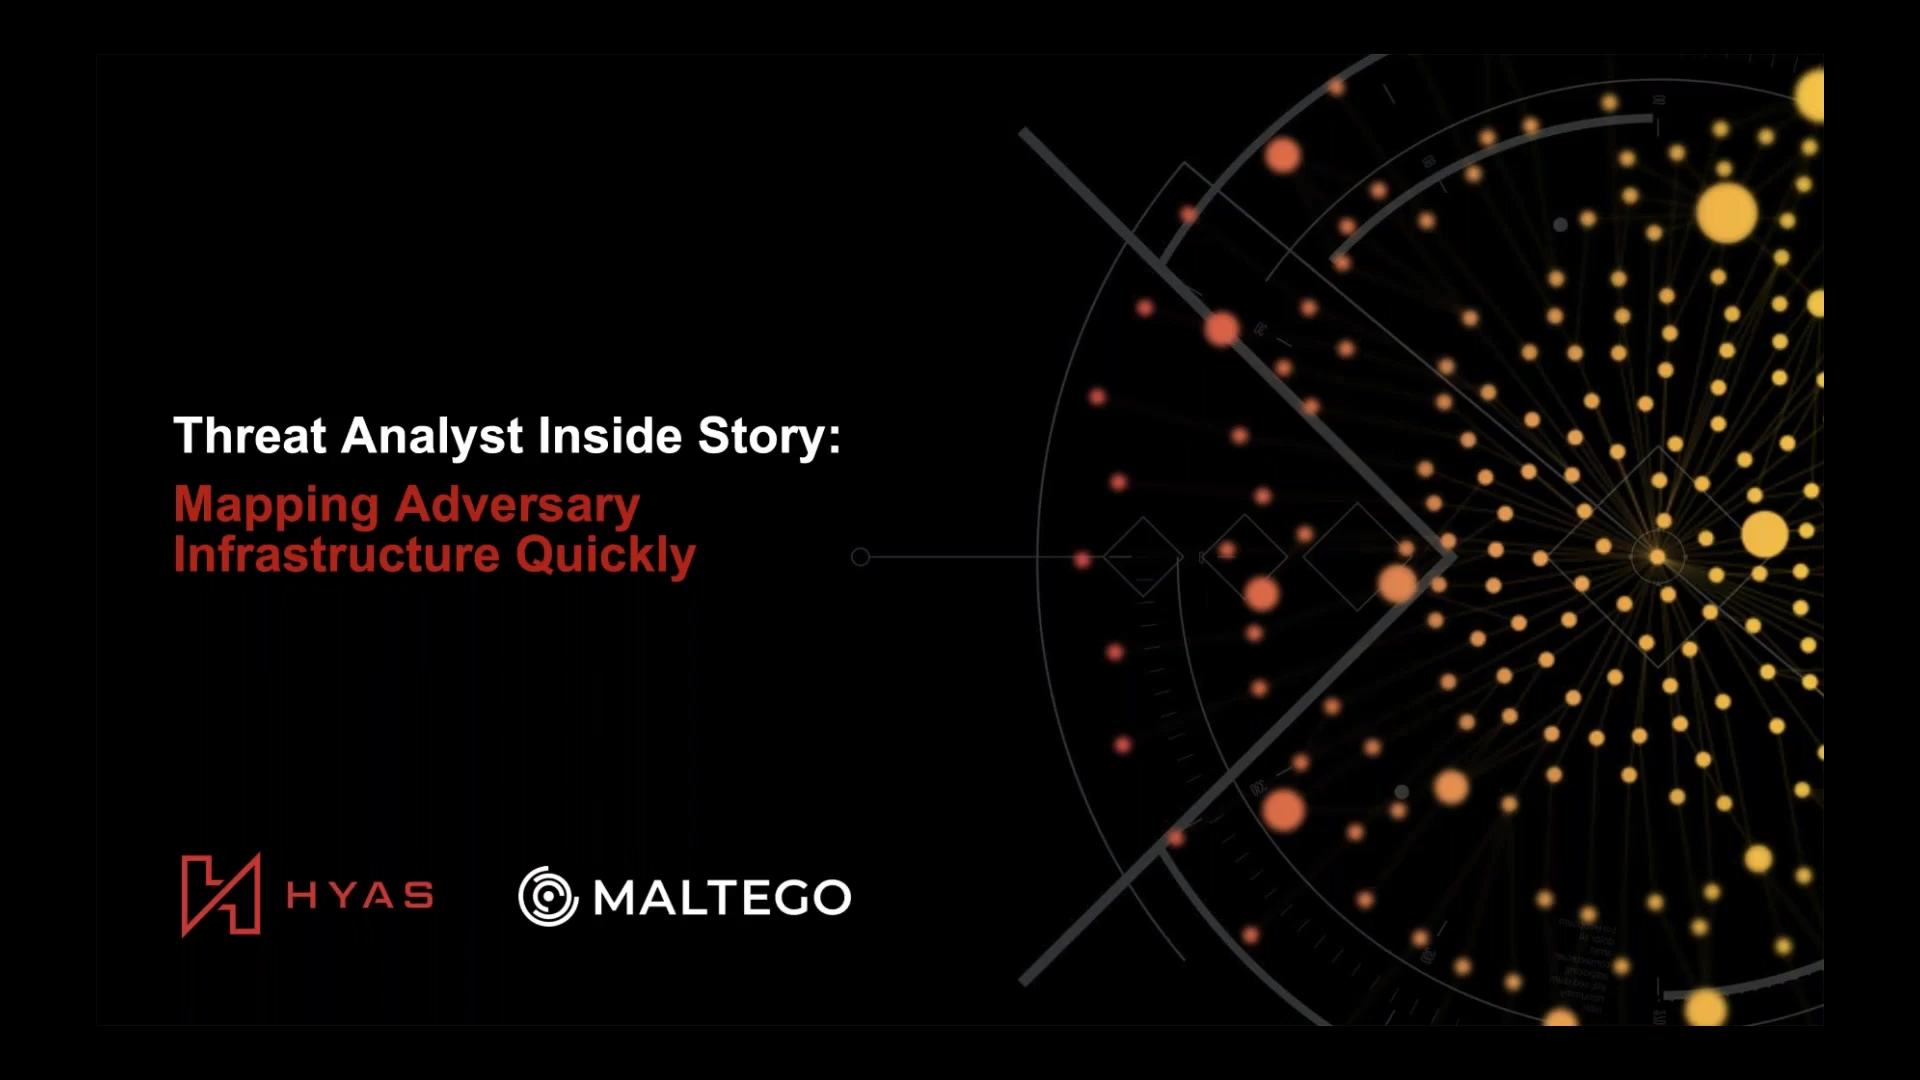 Webinar - Mapping Adversary Infrastructure with HYAS and Maltego-thumb